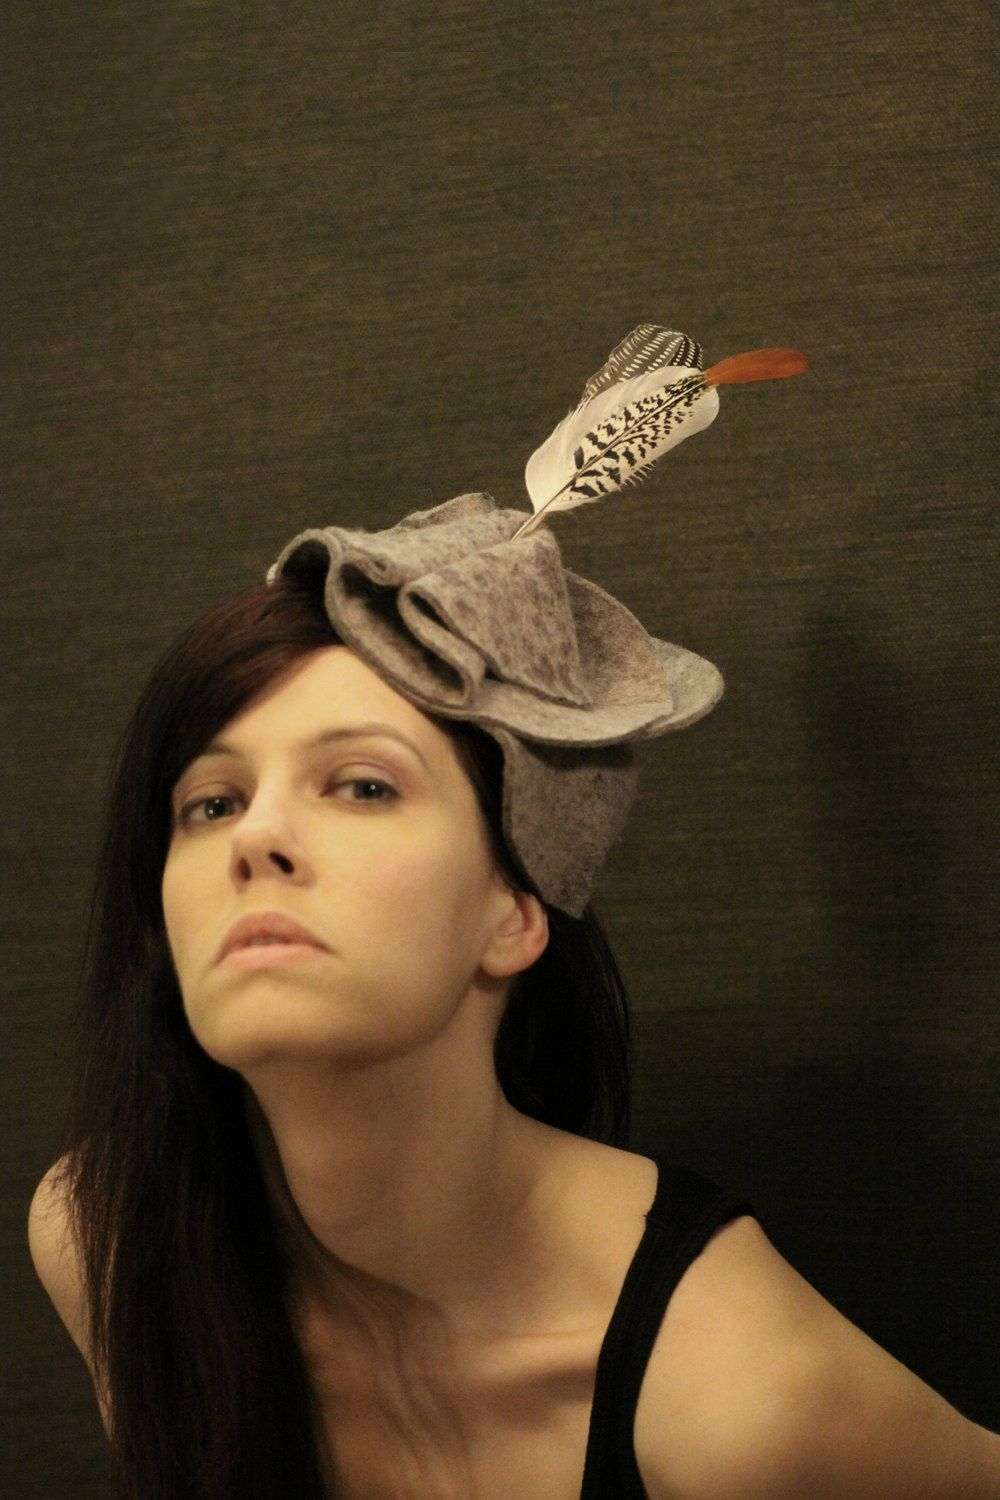 Grey Felt Abstract Hat/Fascinator with Feathers. via pookaqueen on Etsy.